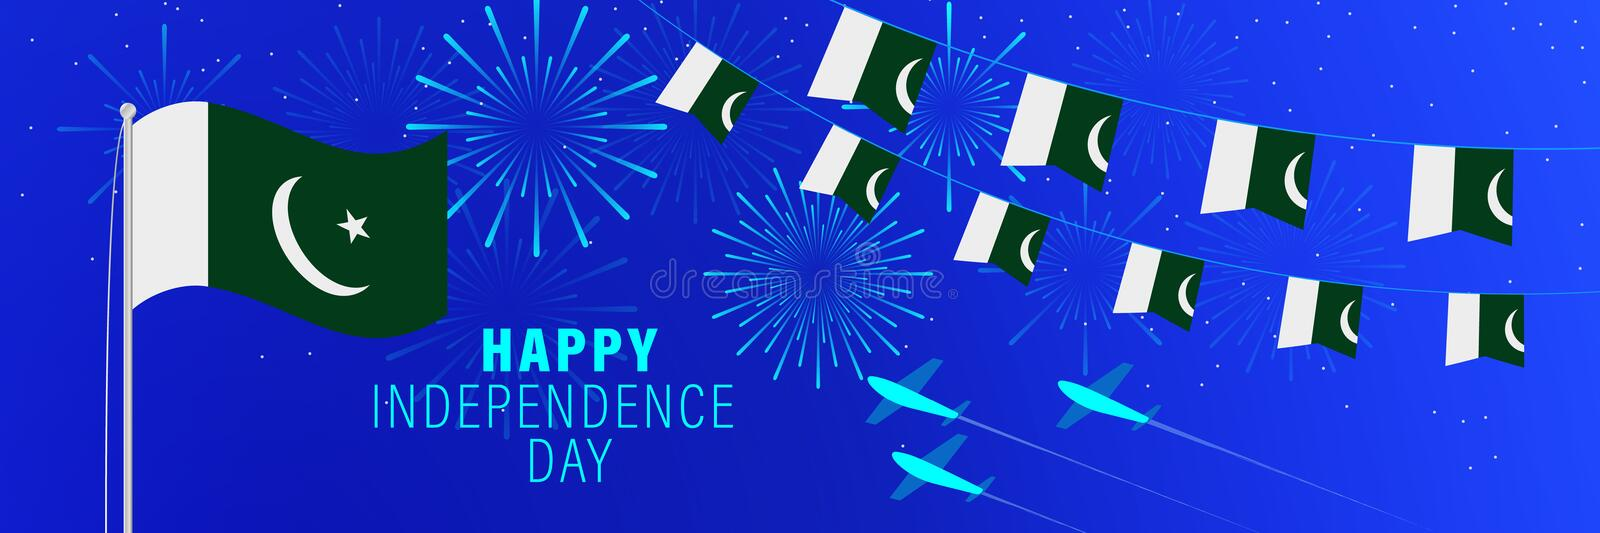 August 14 Pakistan Independence Day greeting card. Celebration background with fireworks, flags, flagpole and text royalty free illustration